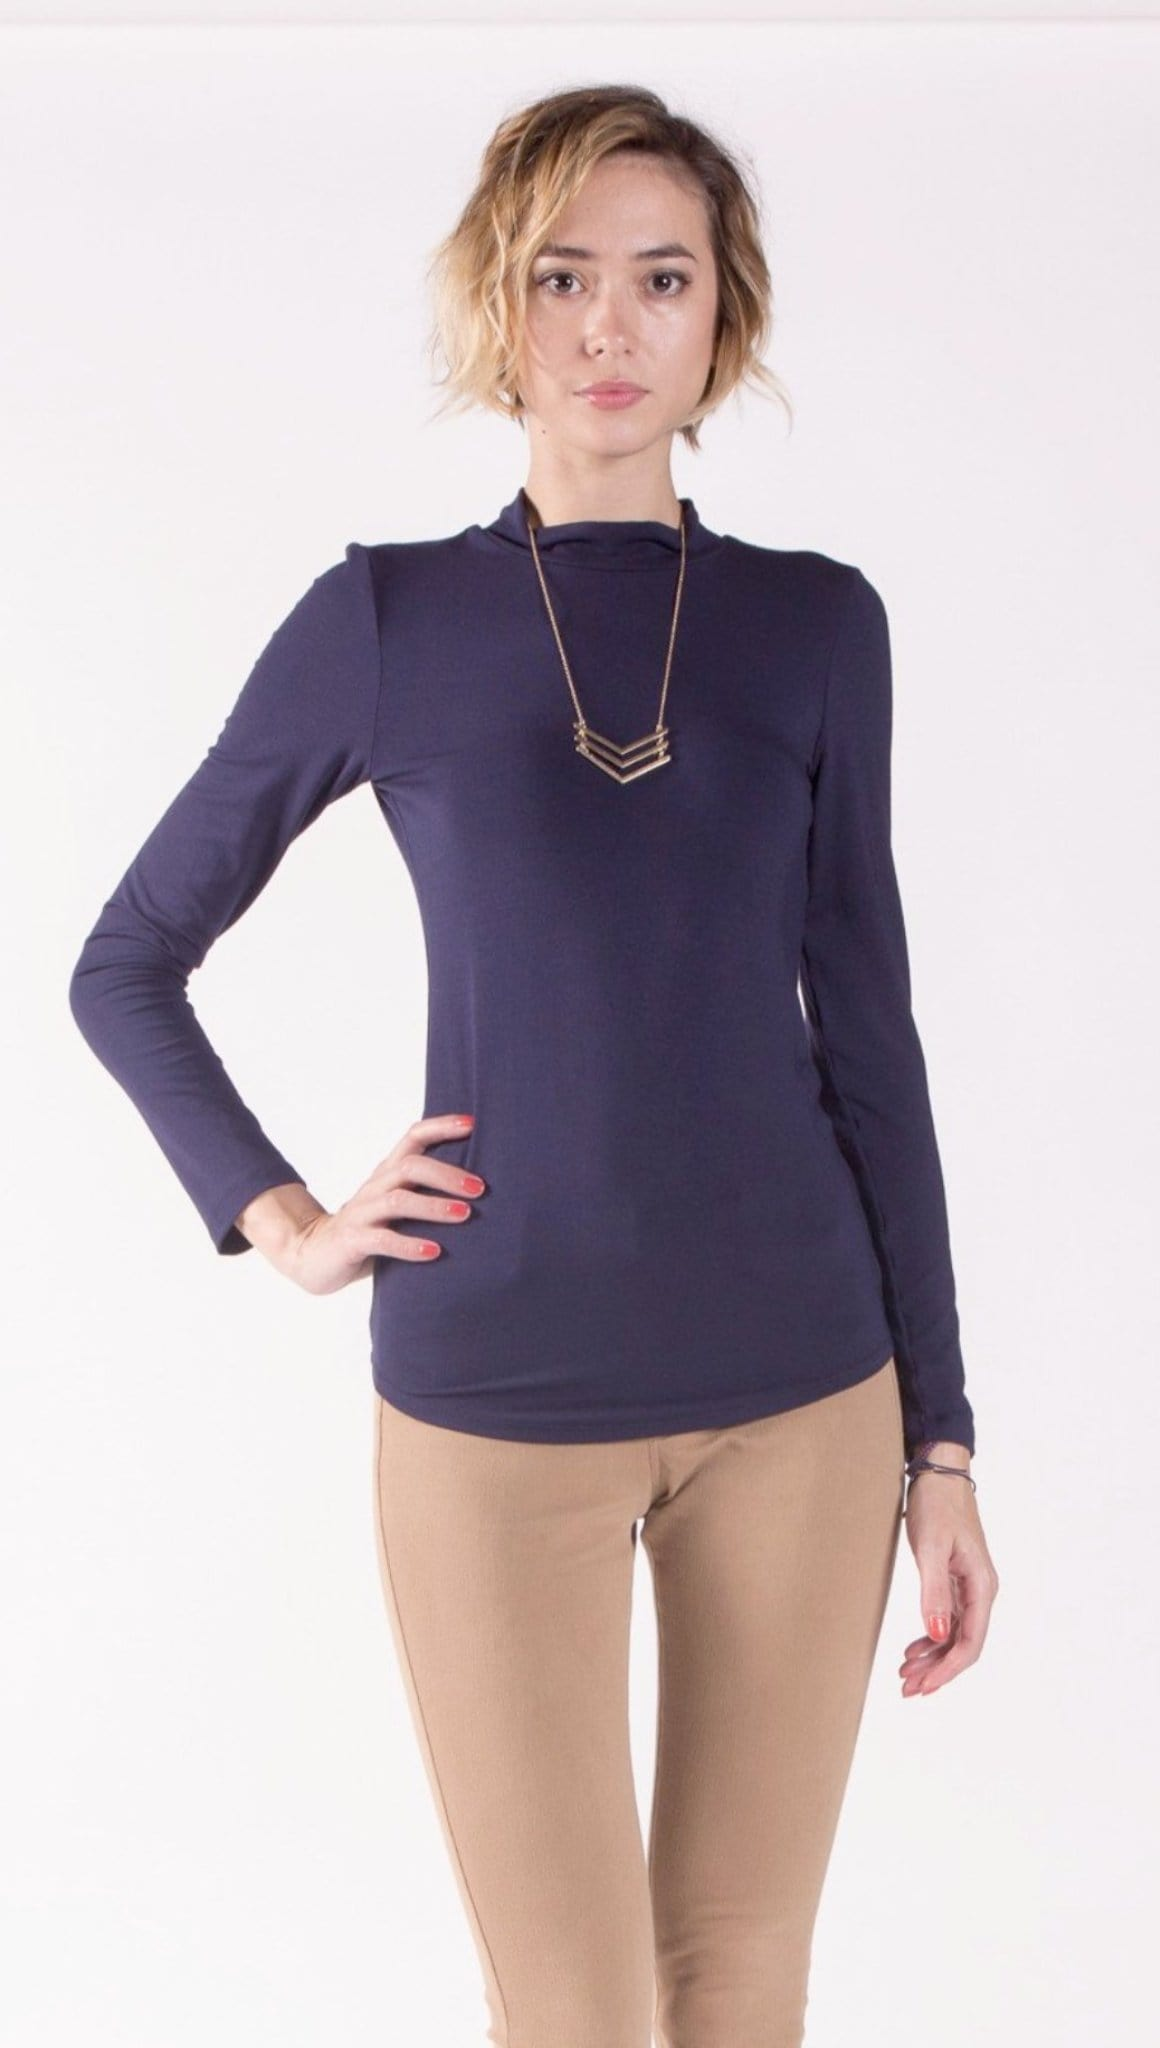 Fitted Long Sleeve Mock Neck Top in Soft Modal Jersey.